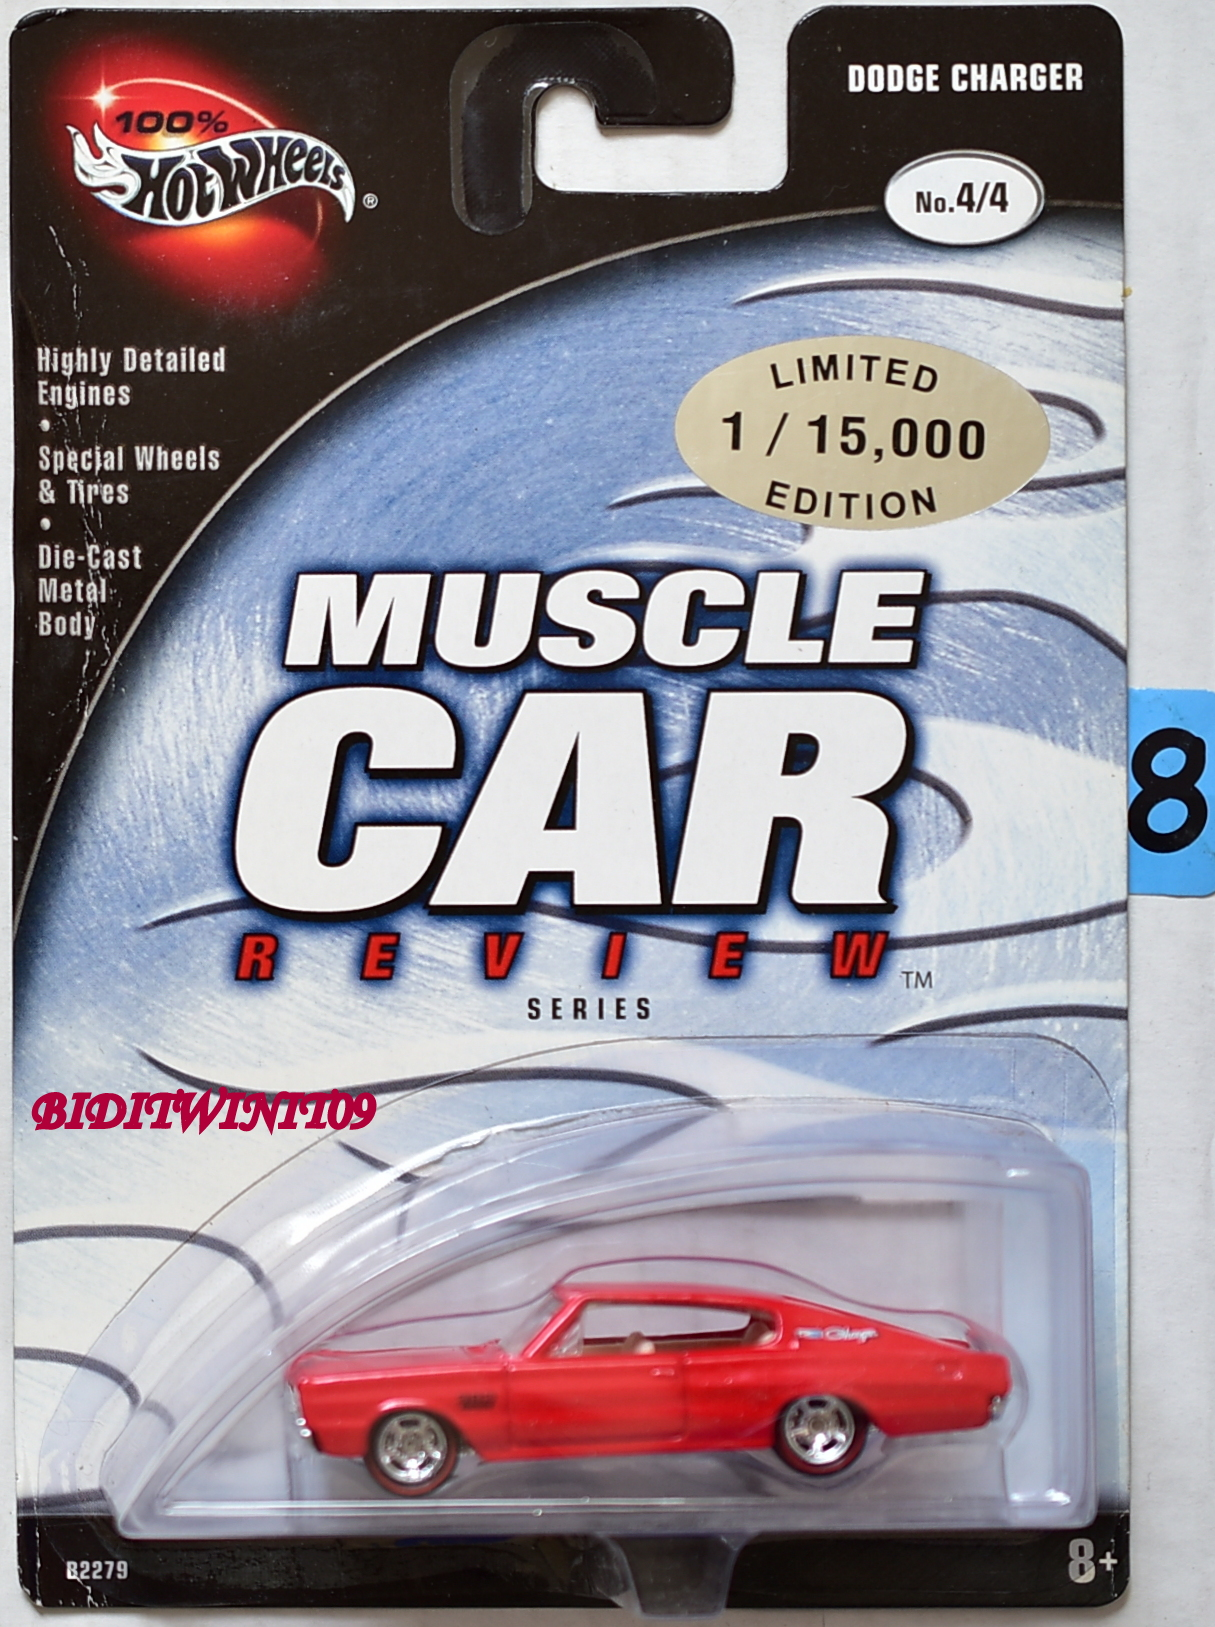 100% HOT WHEELS MUSCLE CAR REVIEW DODGE CHARGER #4/4 RED E+